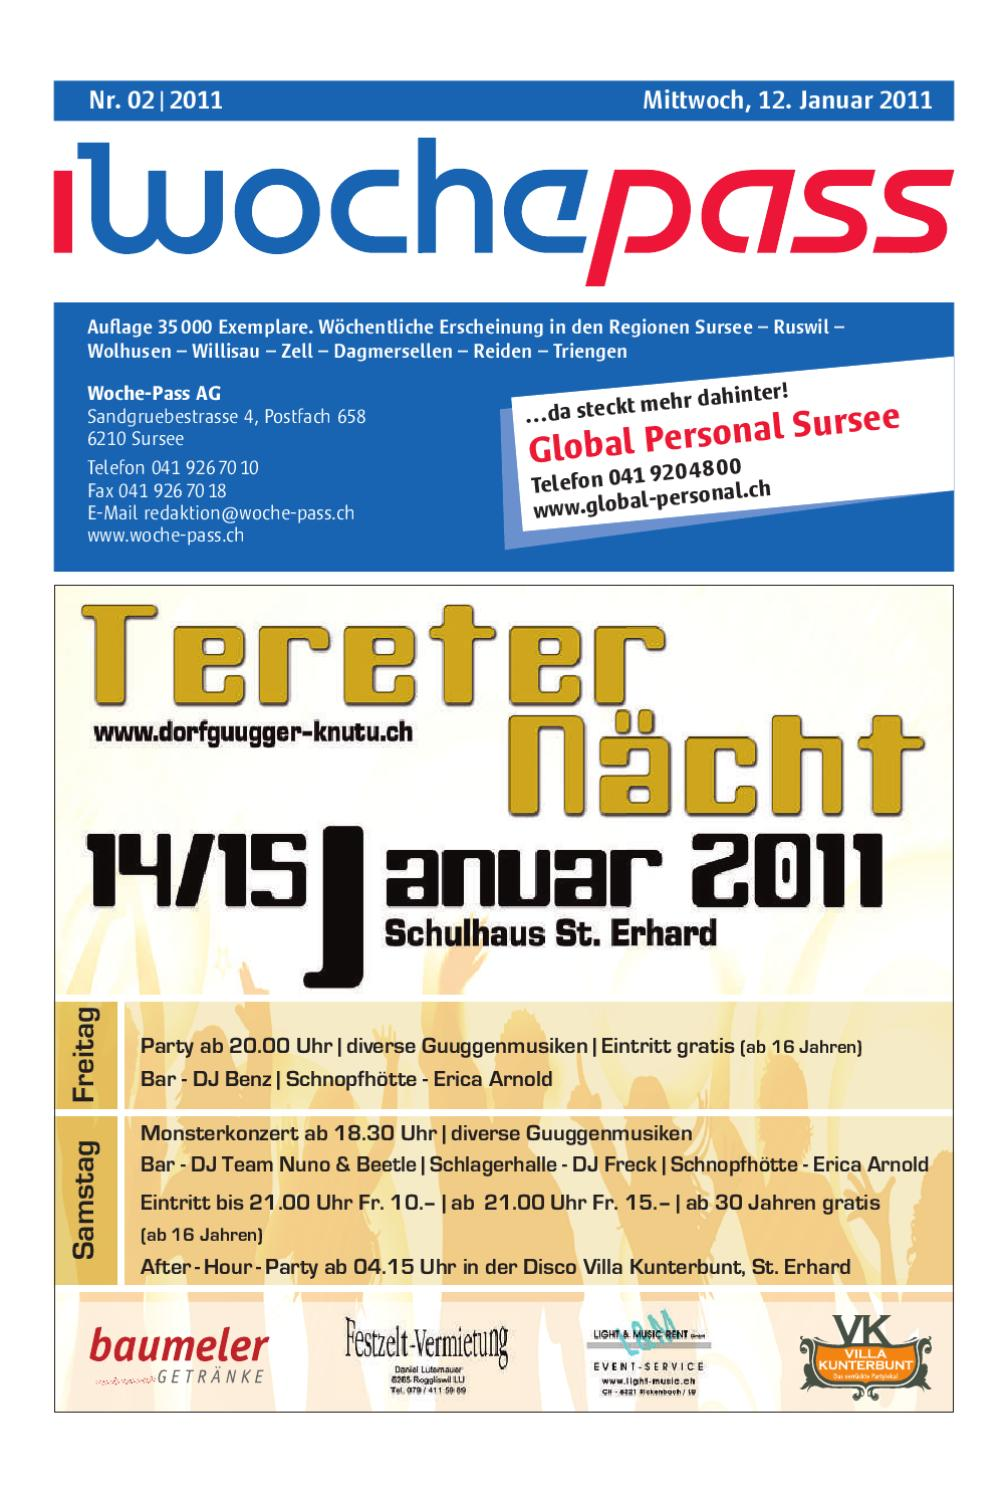 Woche Pass Kw 02 12 Januar 2011 By Woche Pass Ag Issuu